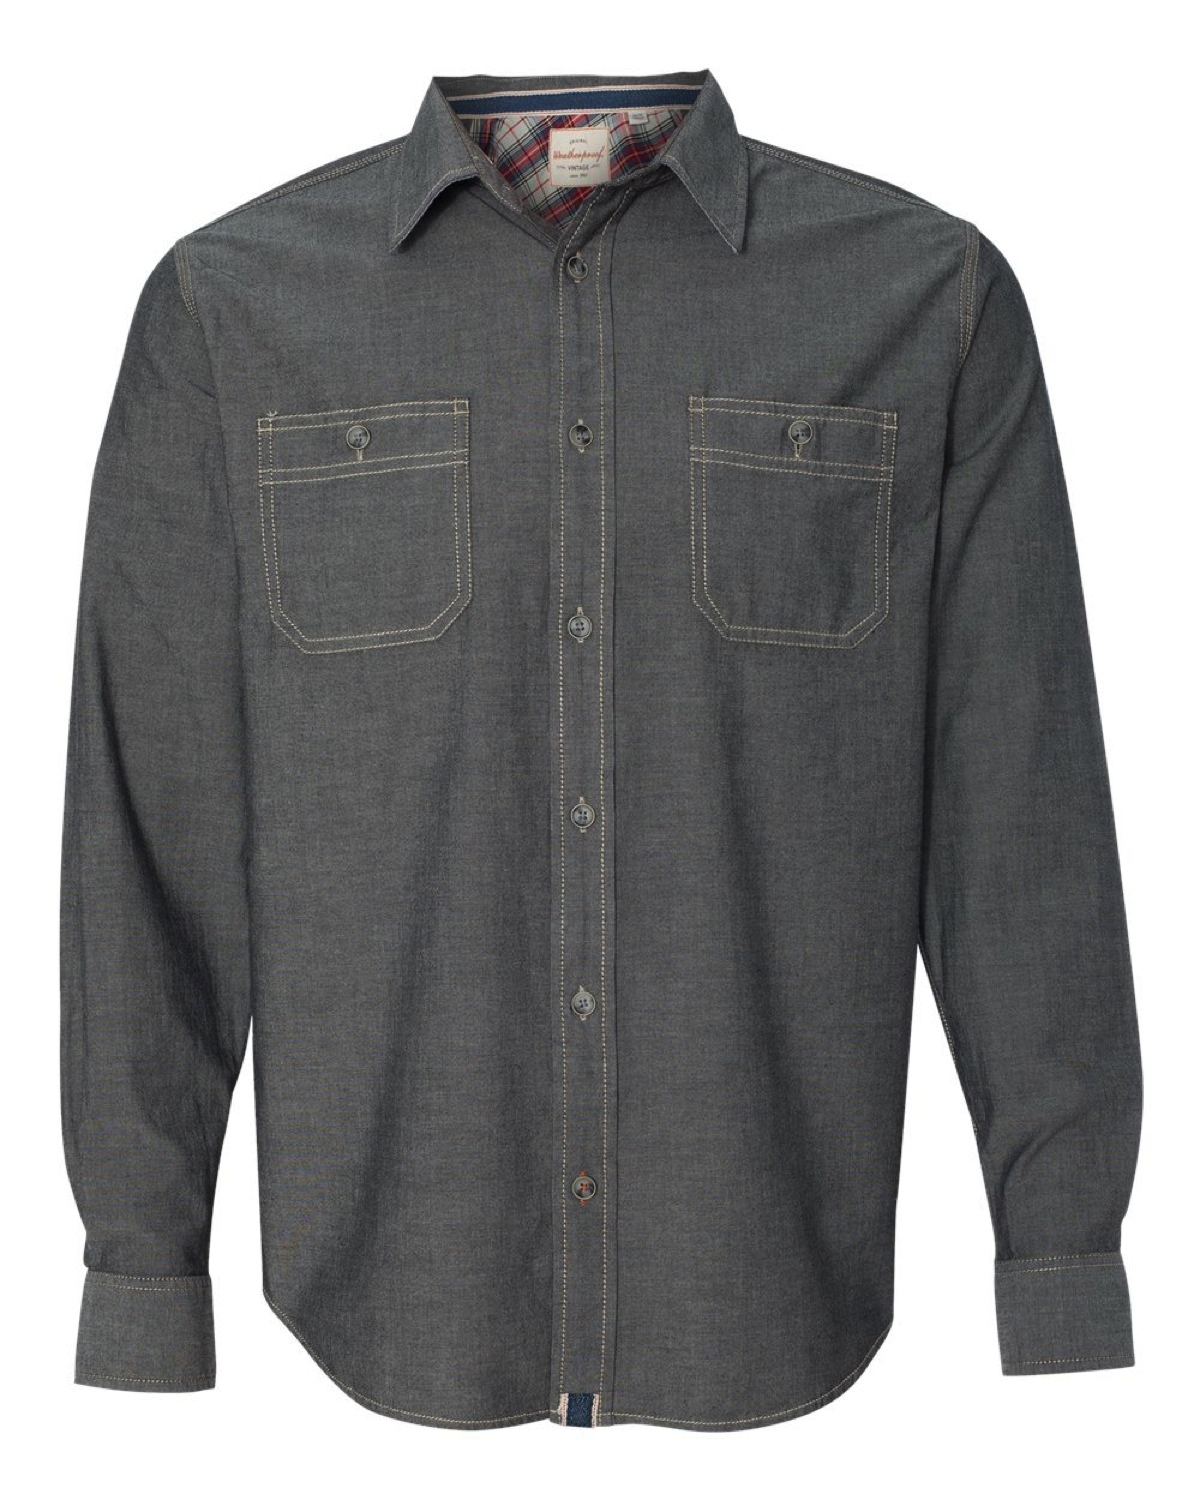 154885 Weatherproof Vintage Chambray Long Sleeve Shirt